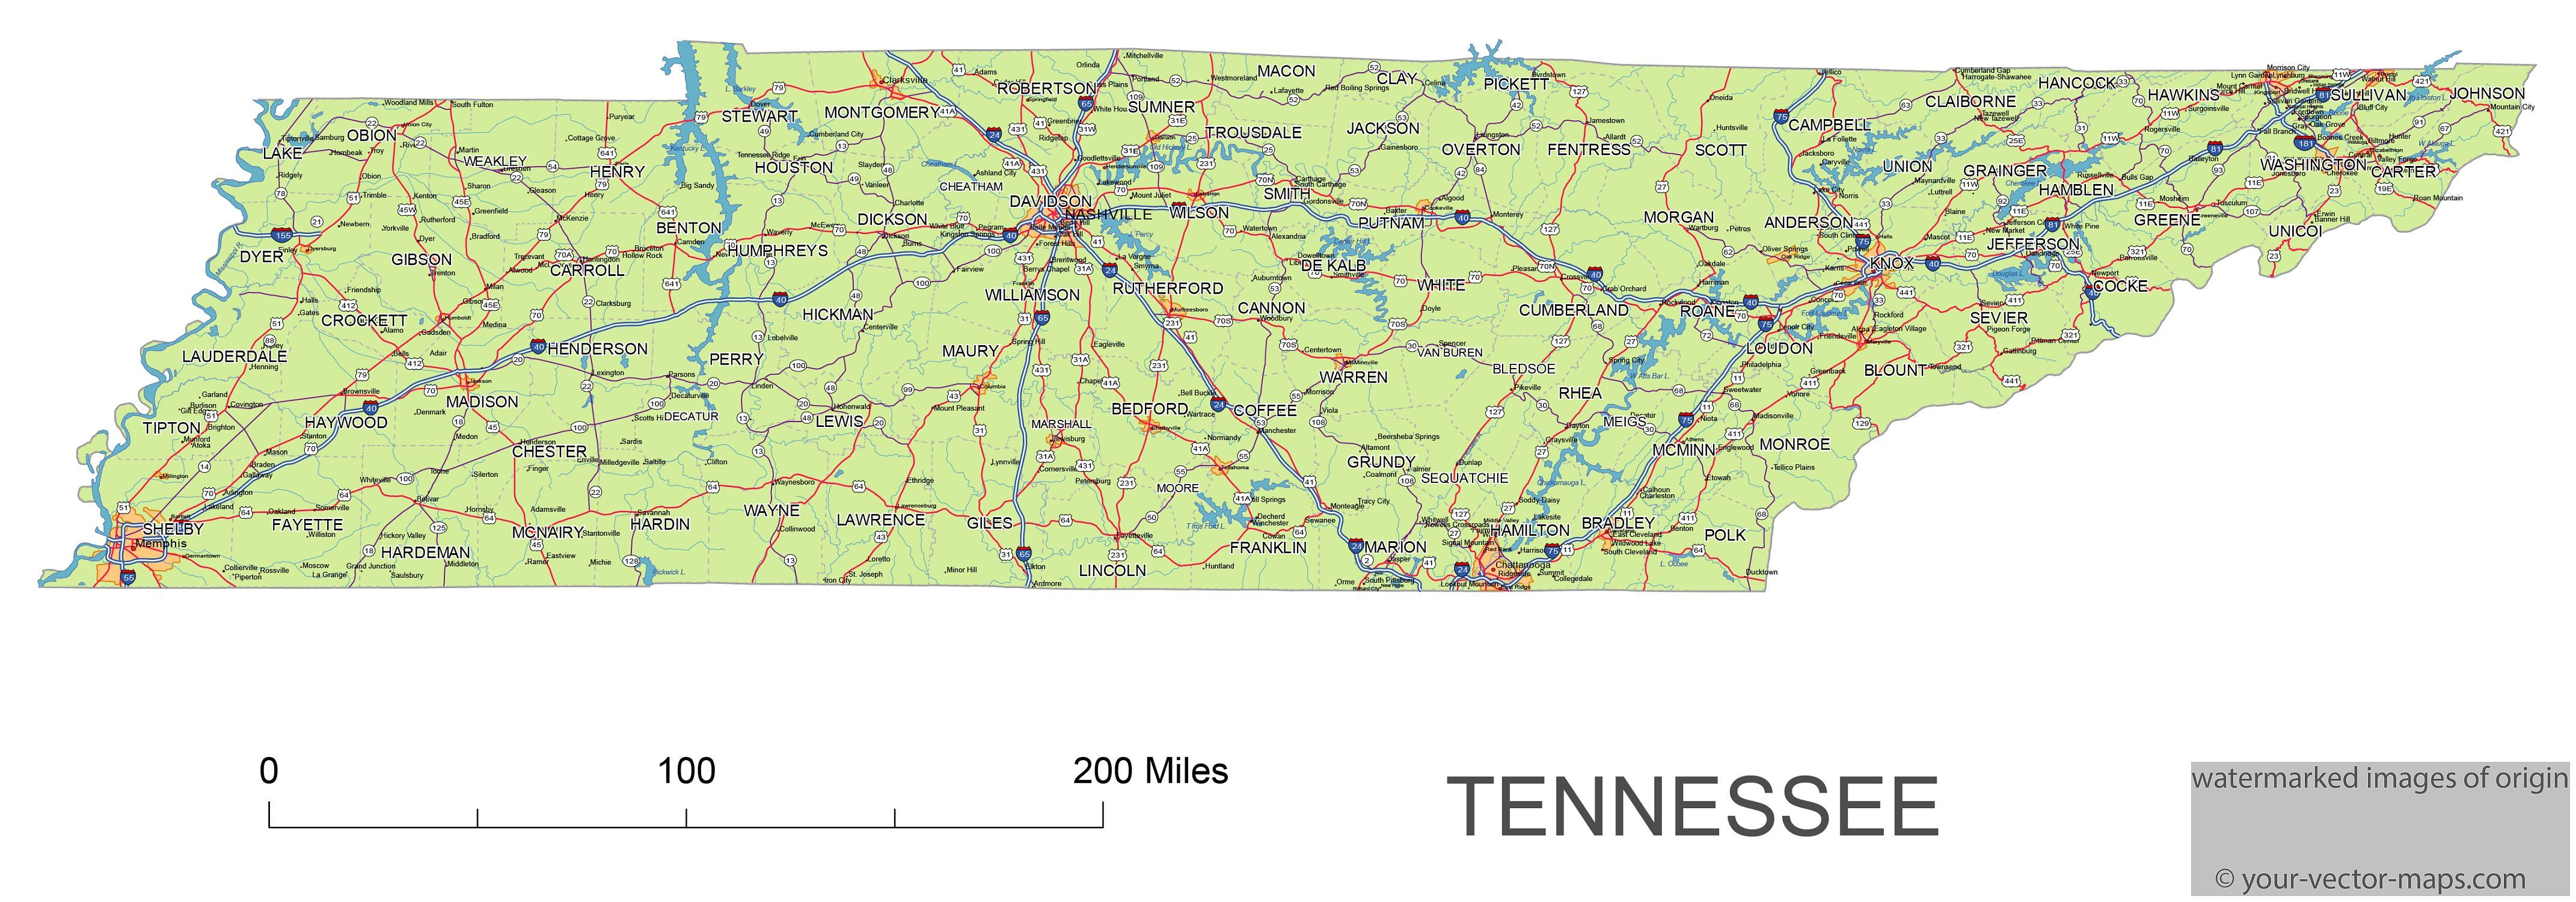 Tn State Map With Cities.Tennessee State Route Network Map Tennessee Highways Map Cities Of